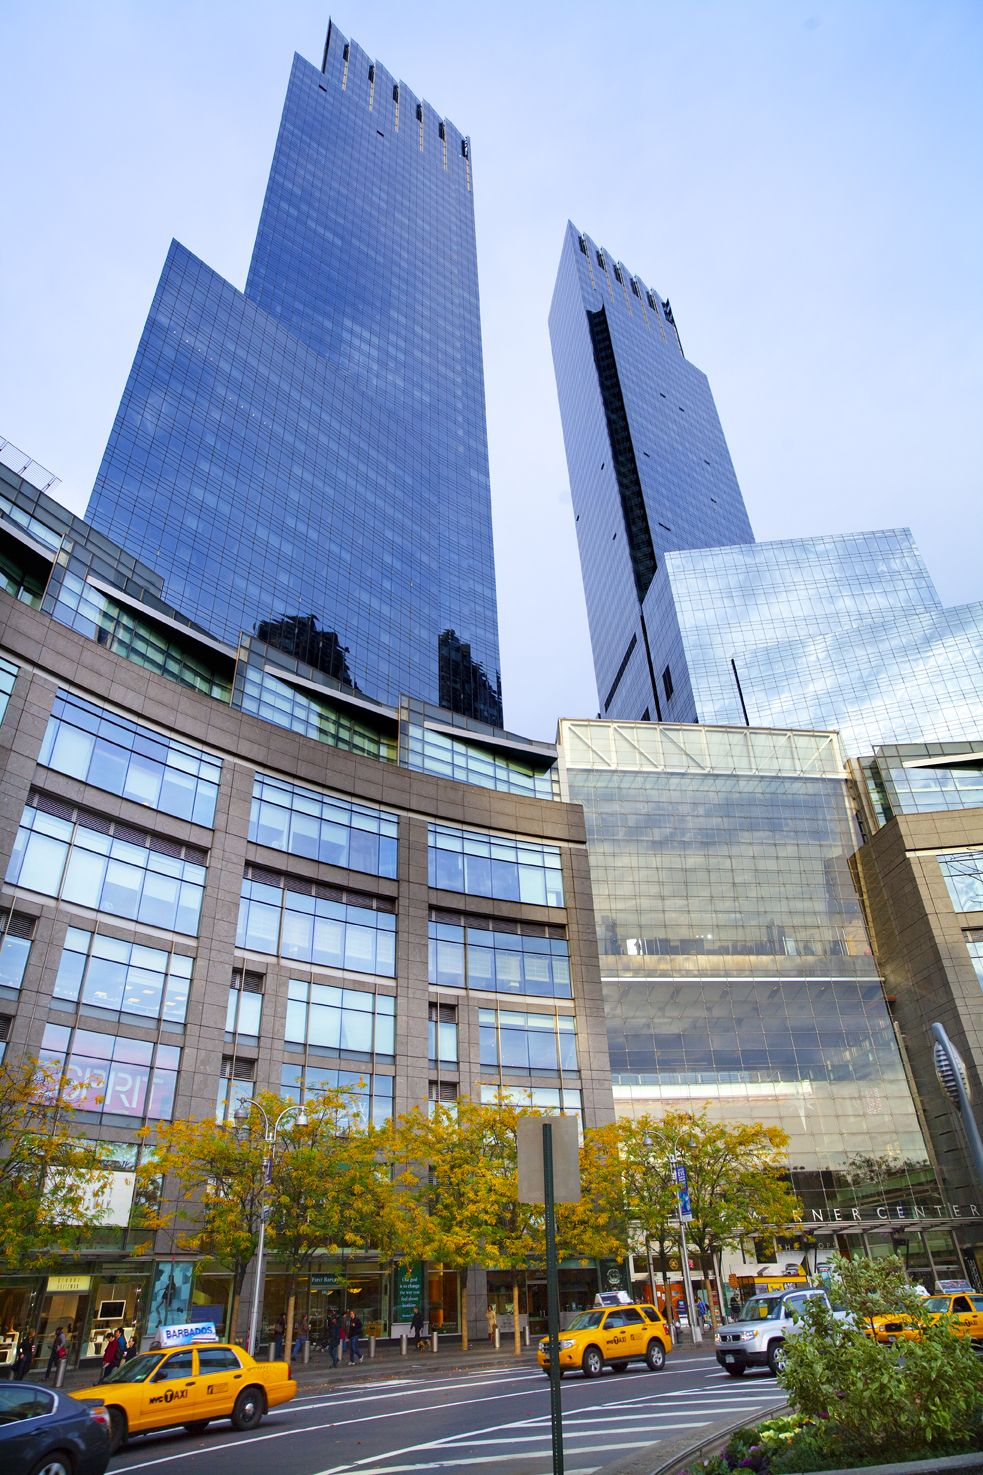 Time Warner Center New York City's iconic landmark has